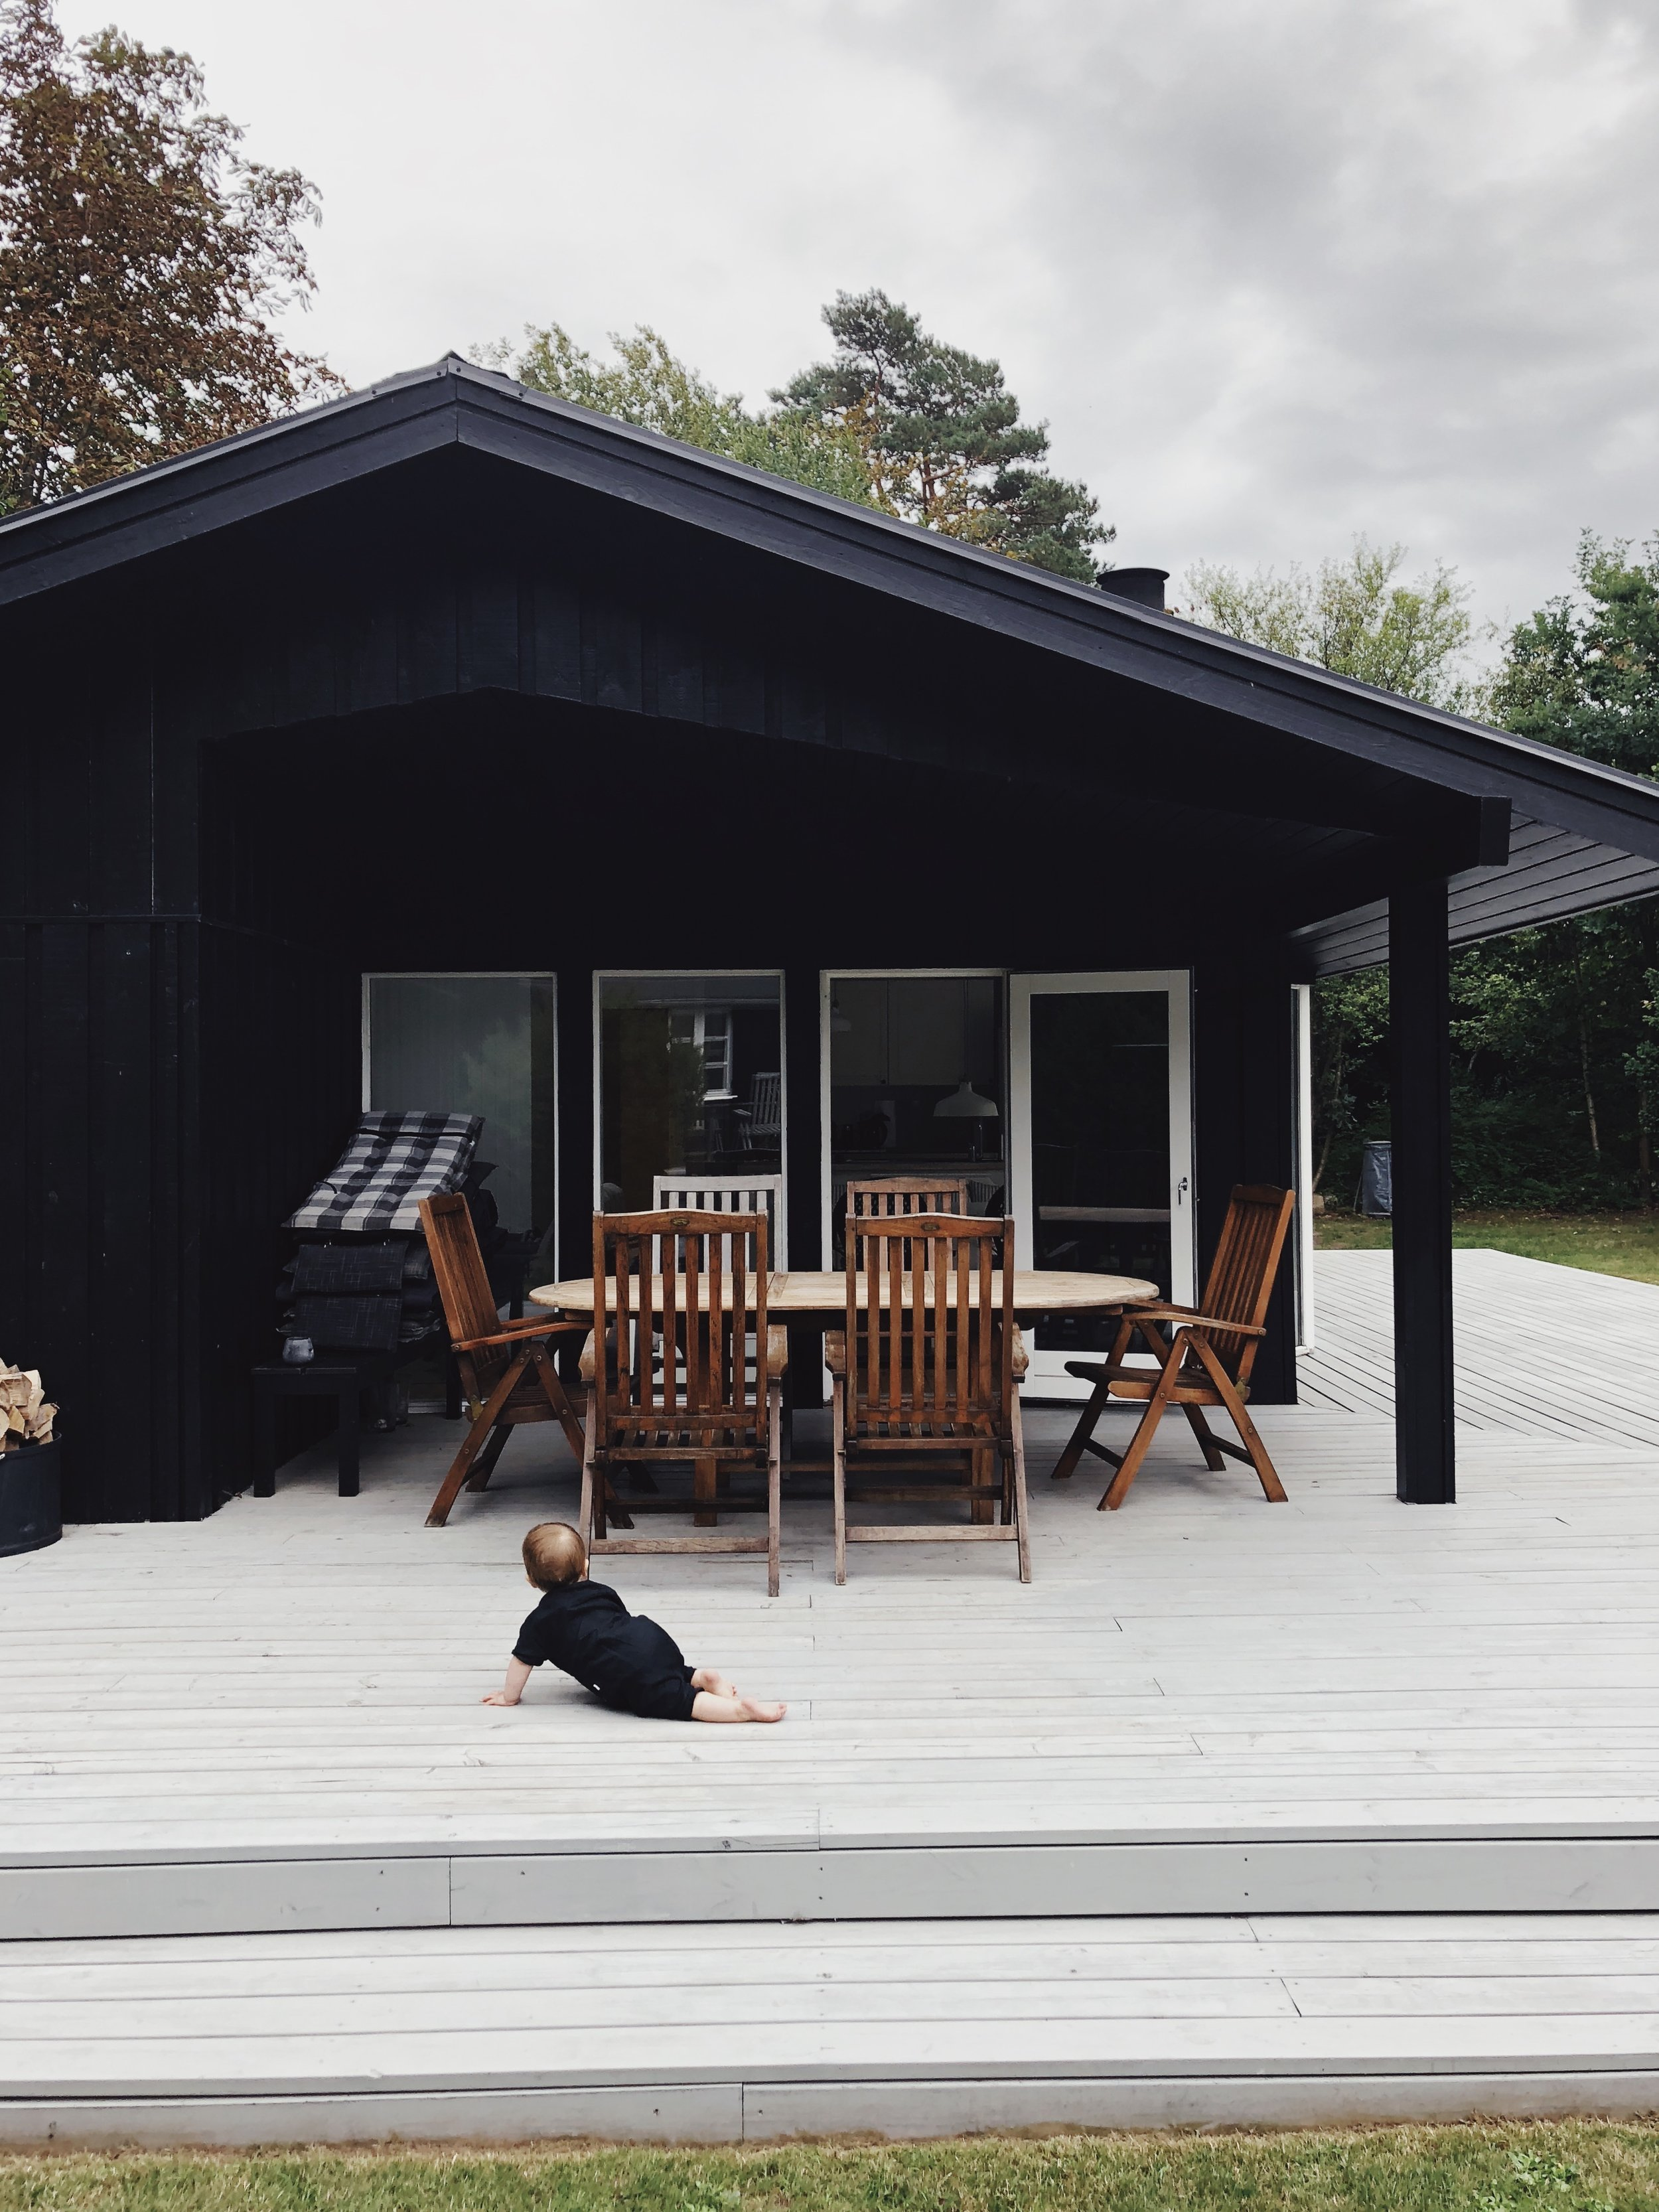 A family holiday to Denmark and staying in a summerhouse on the Danish coast with children. More on my blog, ourstorytime.co.uk